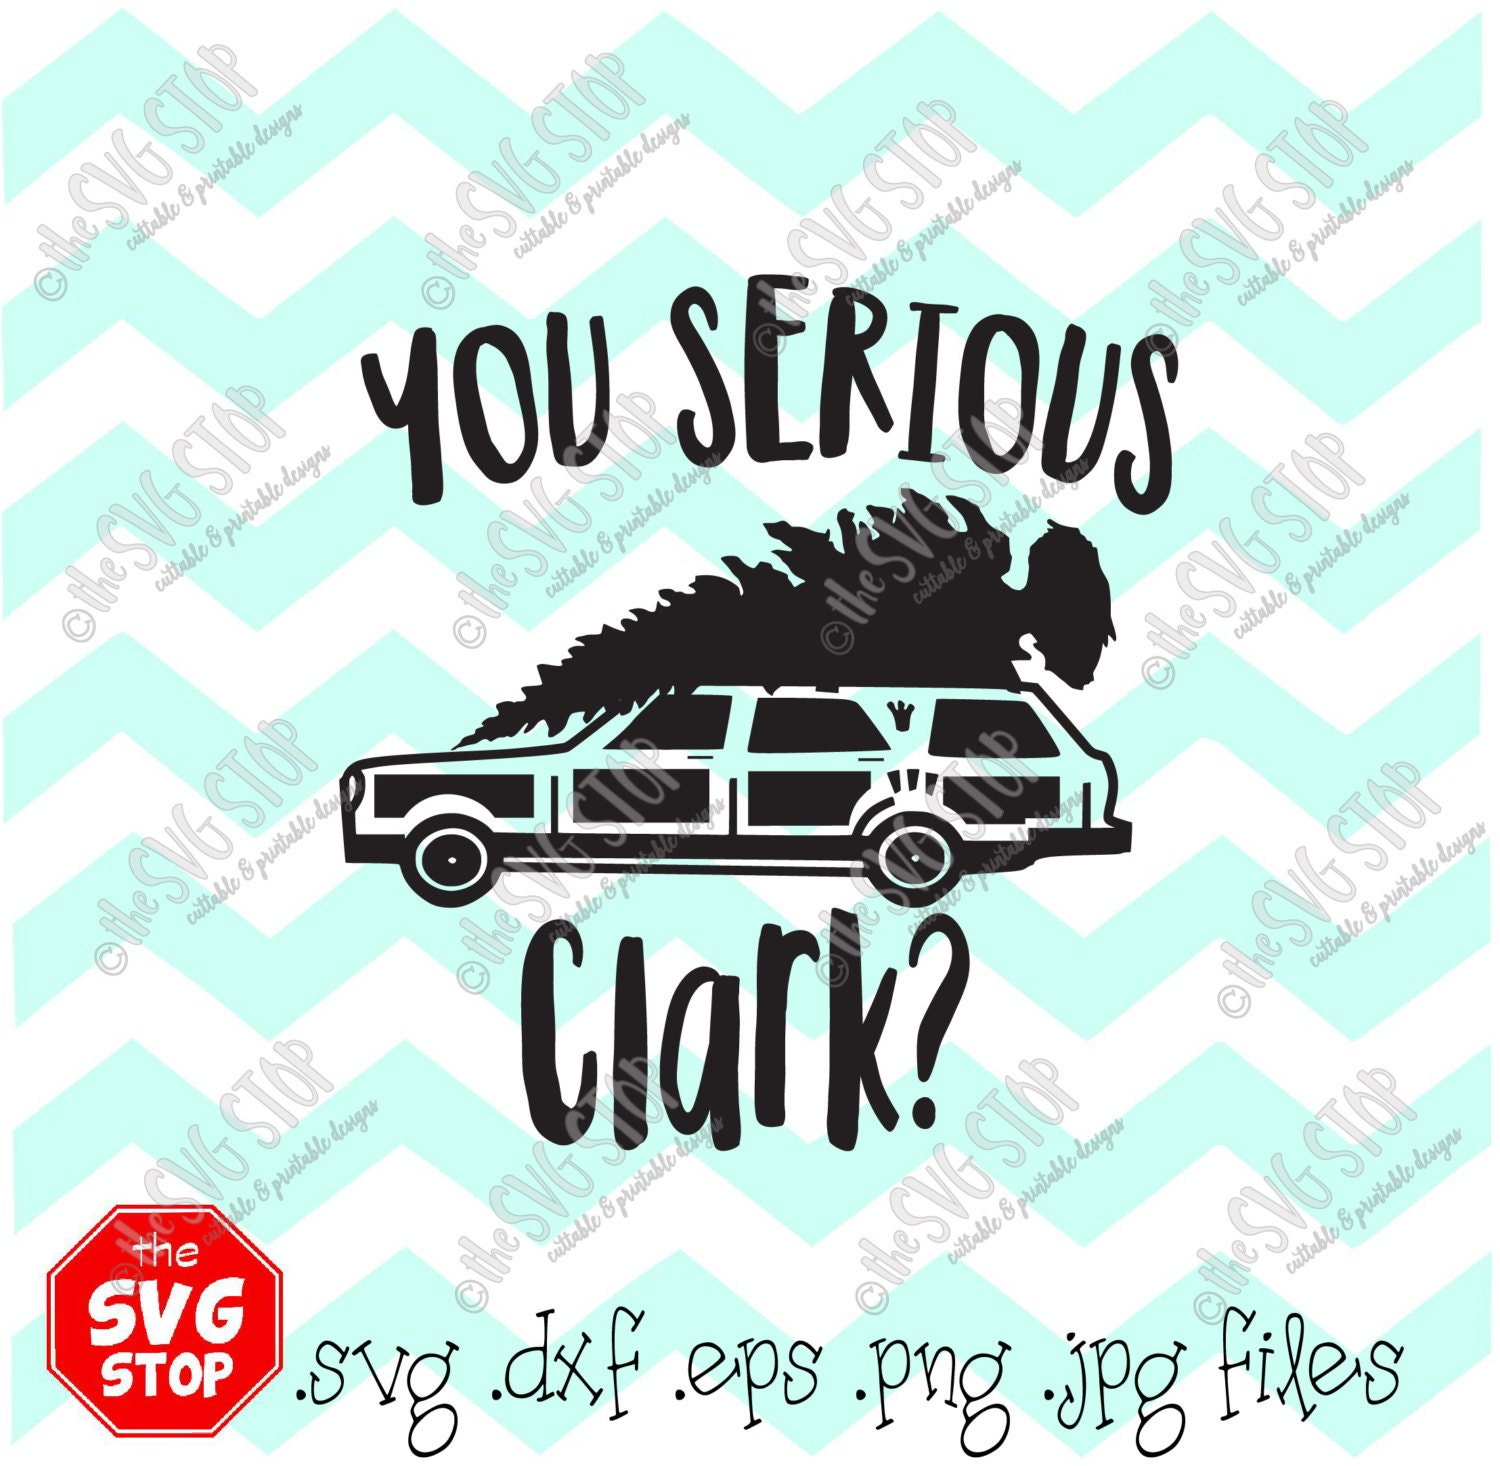 You Serious Clark Christmas Vacation Svg Files Dxf Png Jpg